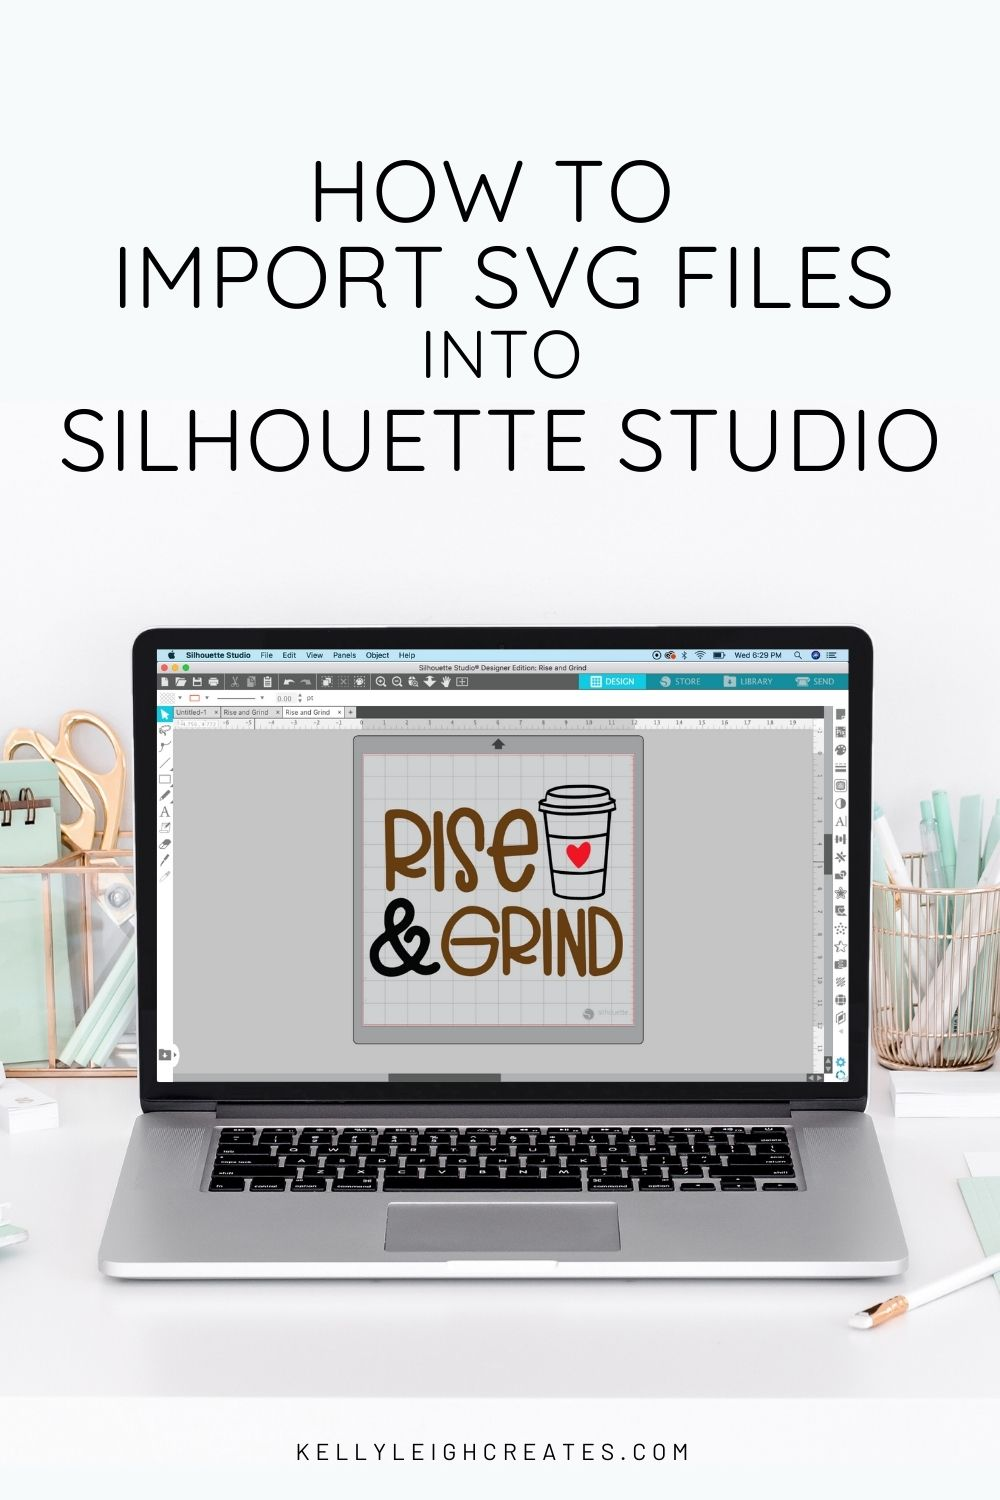 import SVG files into Silhouette